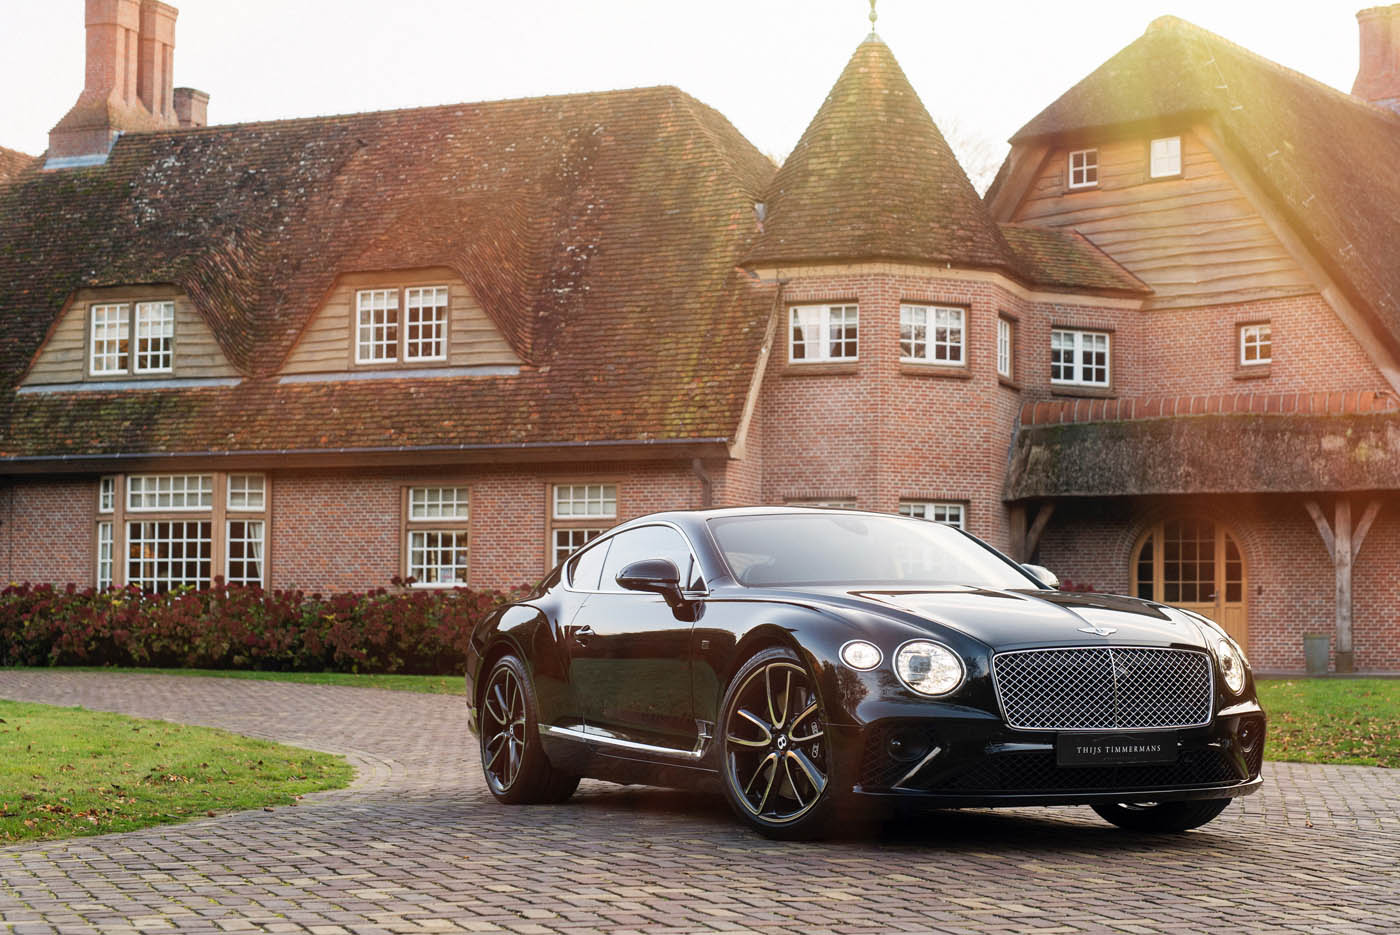 Bentley auto Thijs Timmermans